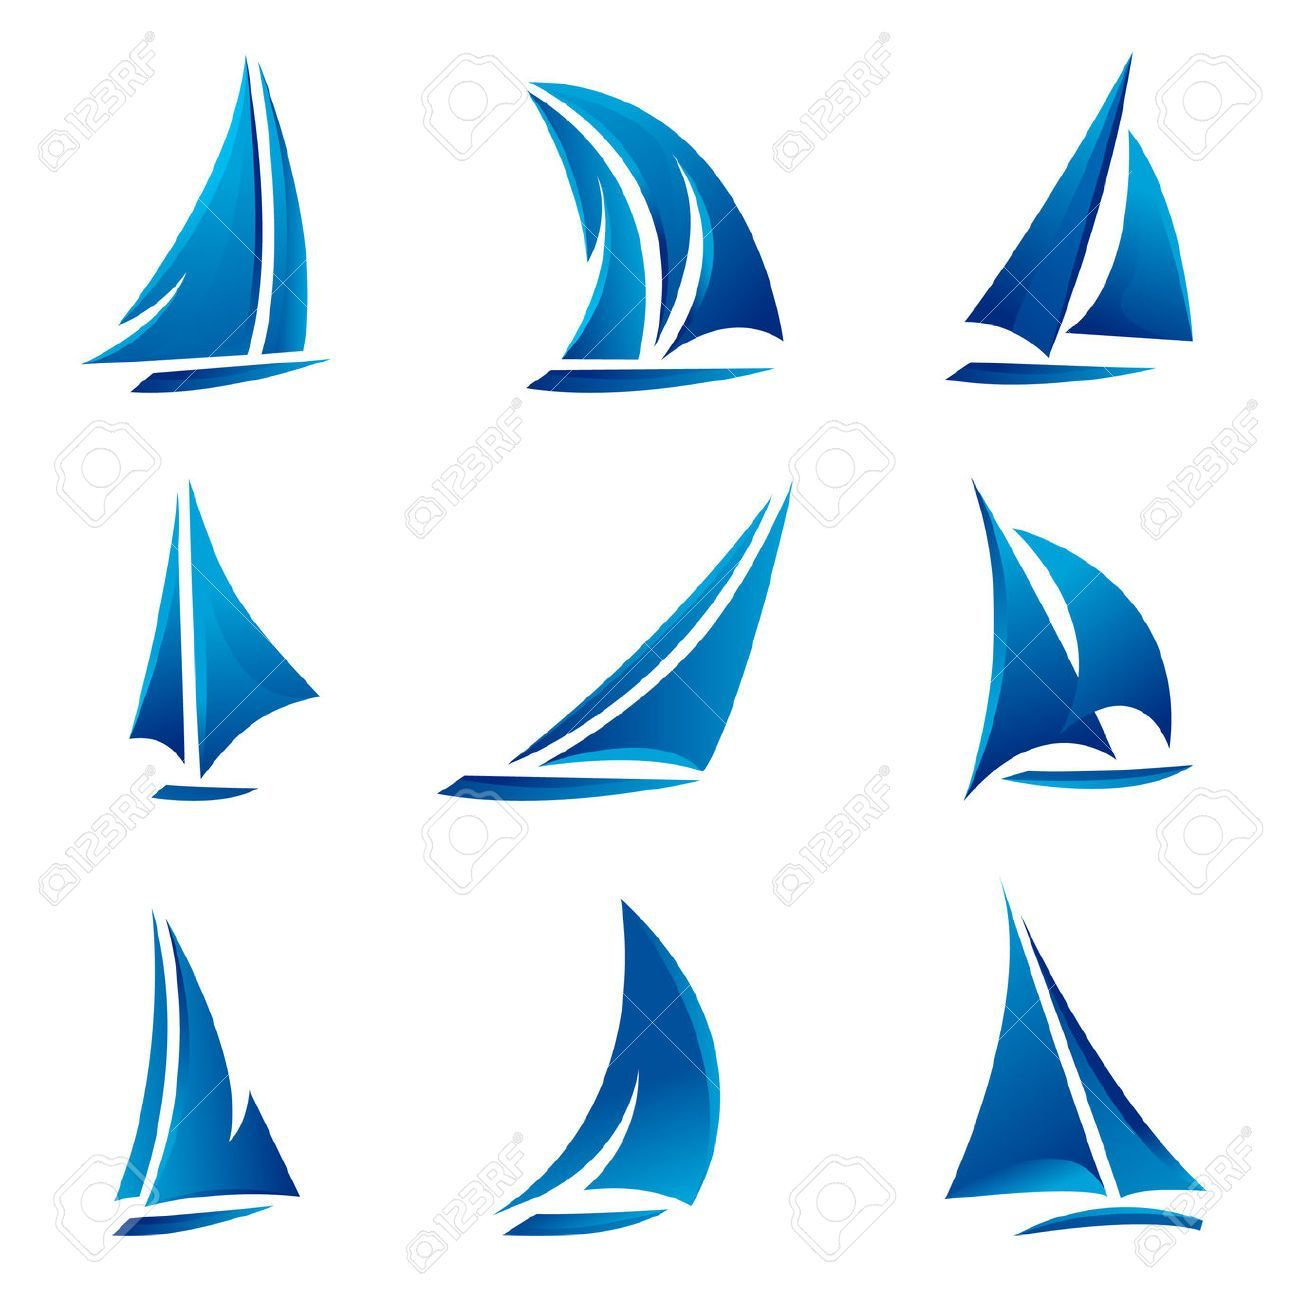 small resolution of sailboat stock vector illustration and royalty free sailboat clipart yachttattoo